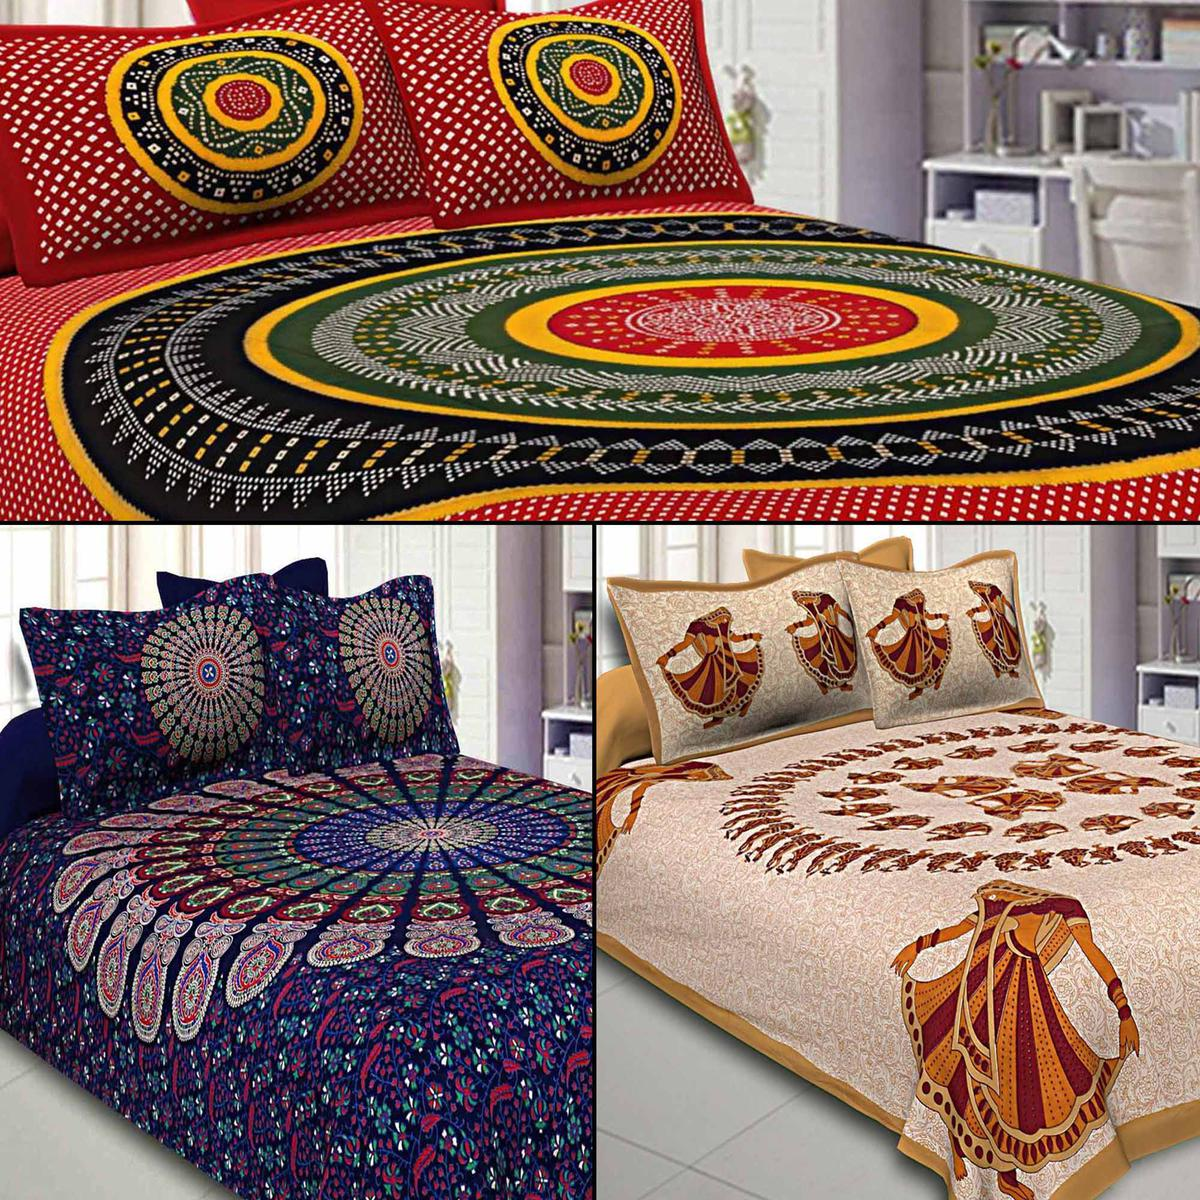 Demanding Printed Double Sized Bed Sheets With 2 Pillow Covers - Pack of 3